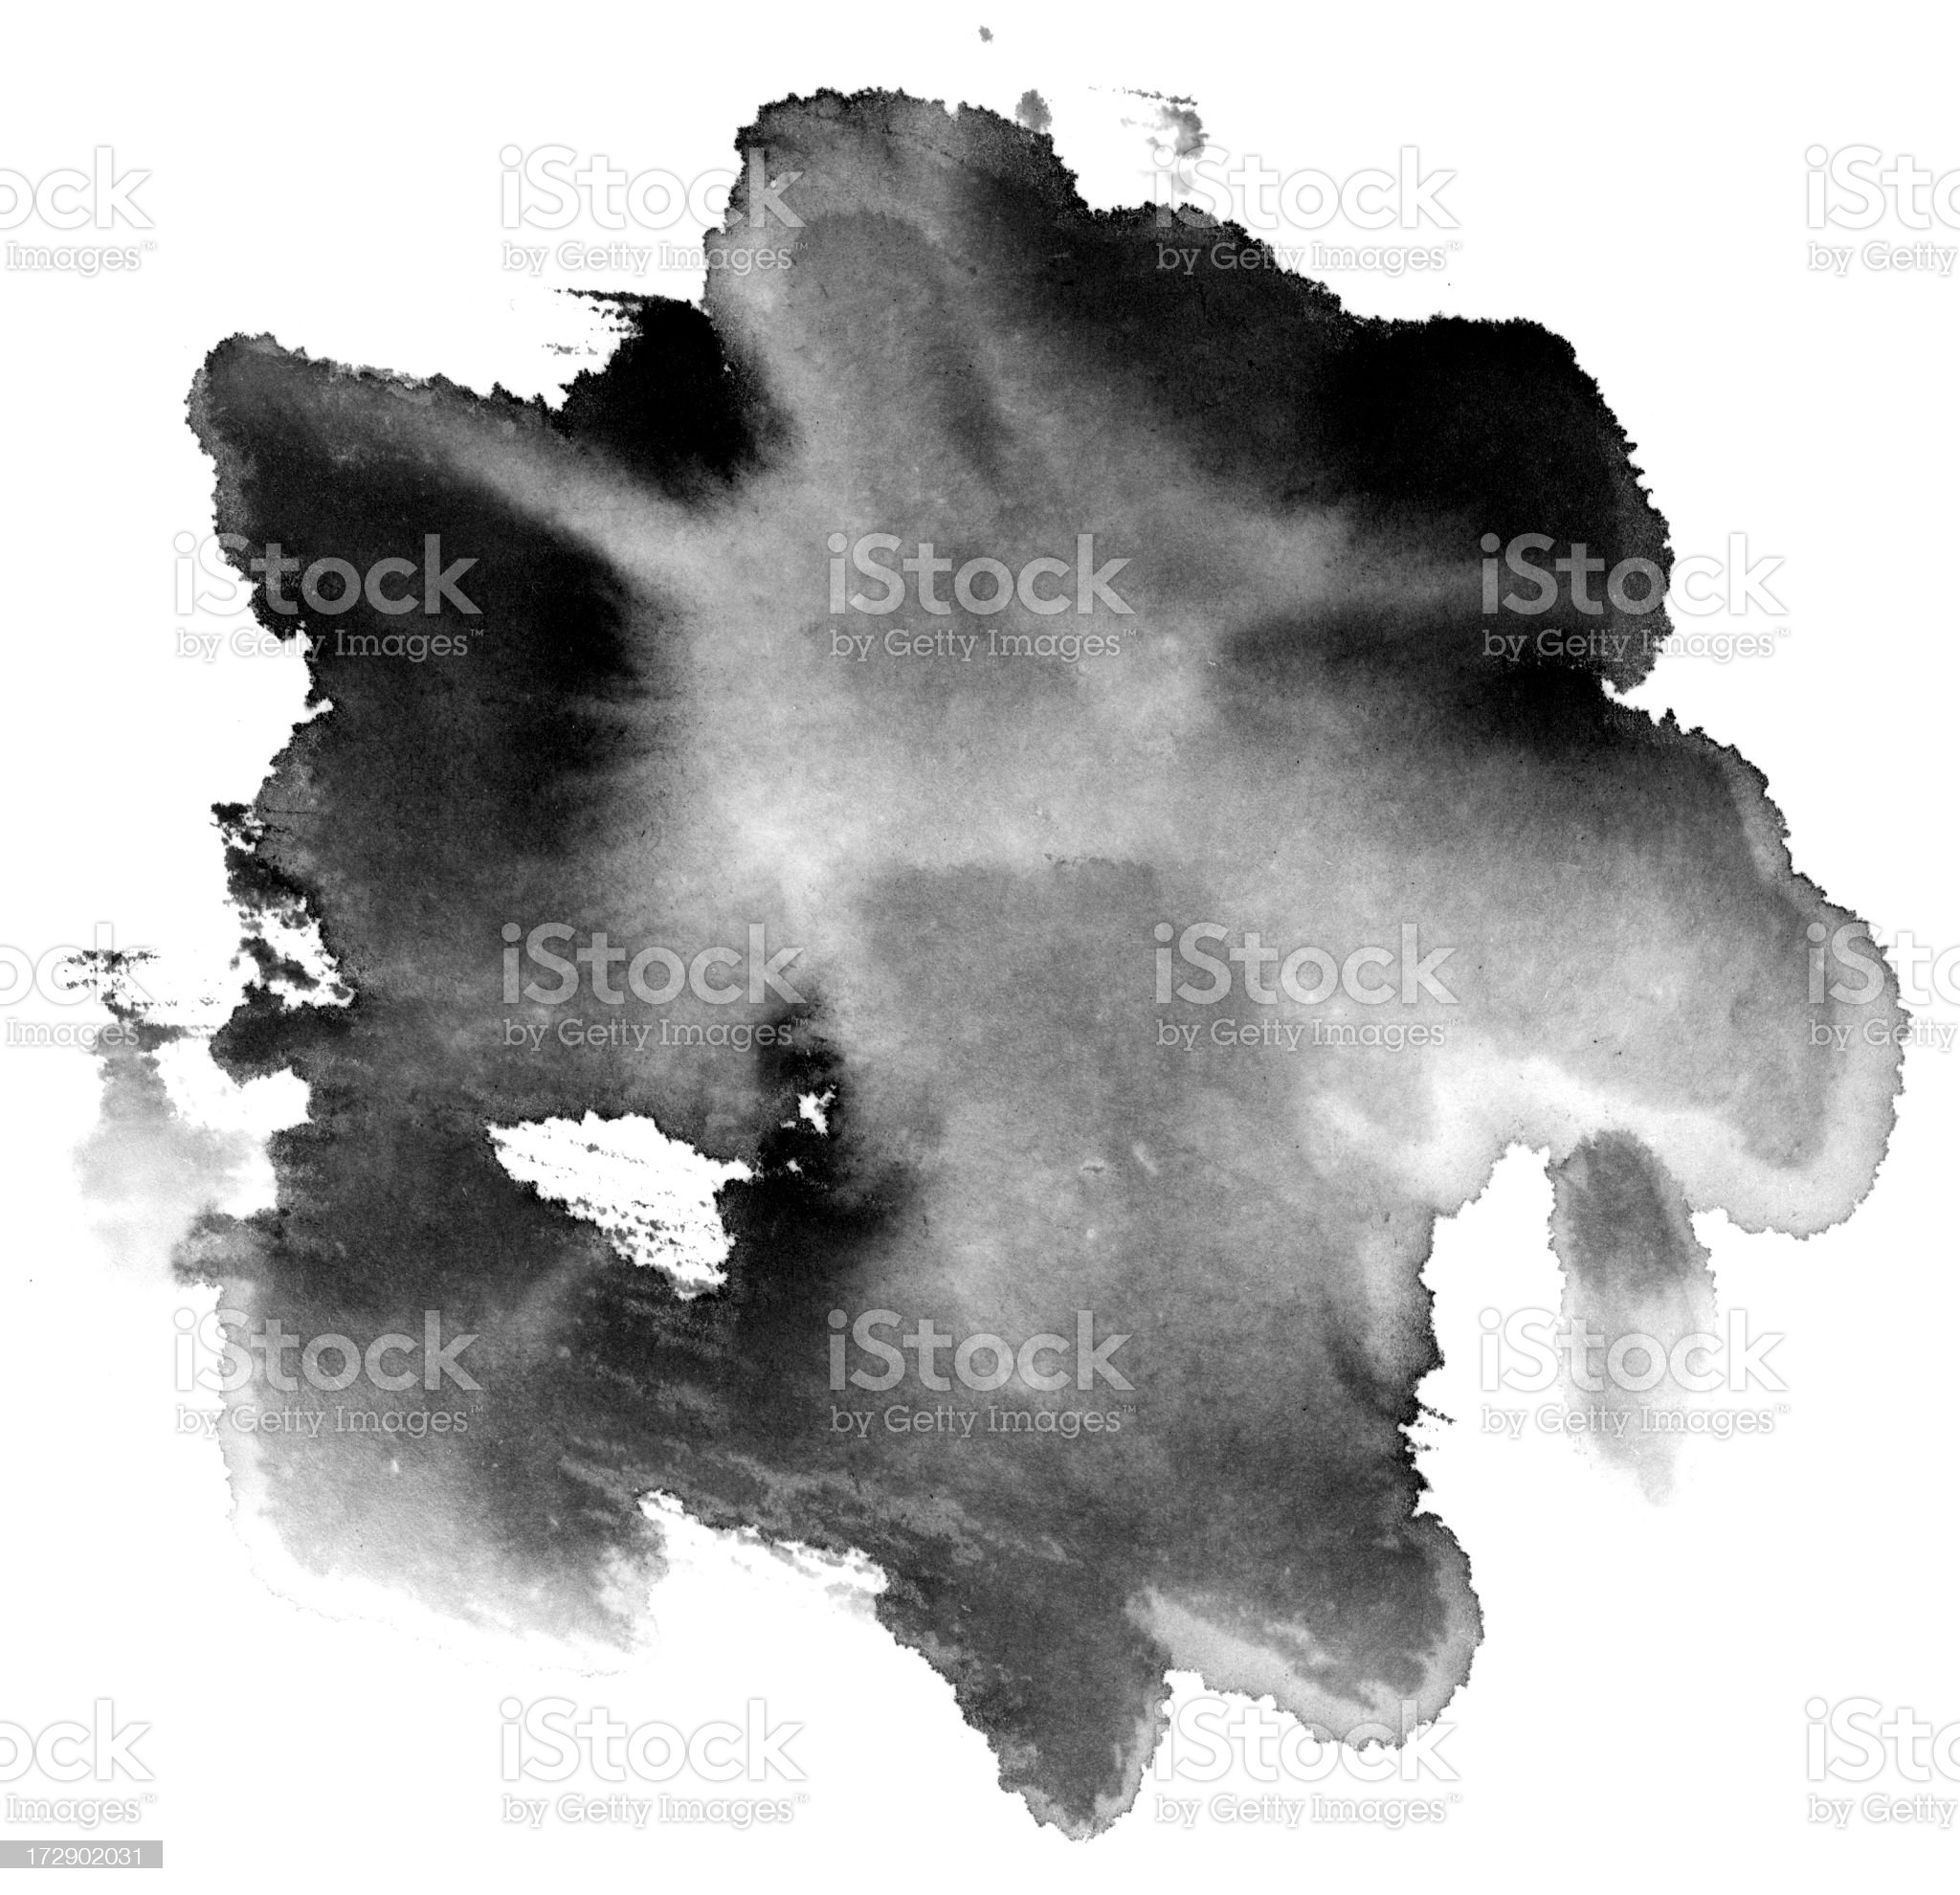 Black water coloring wash painting effect over white royalty-free stock photo